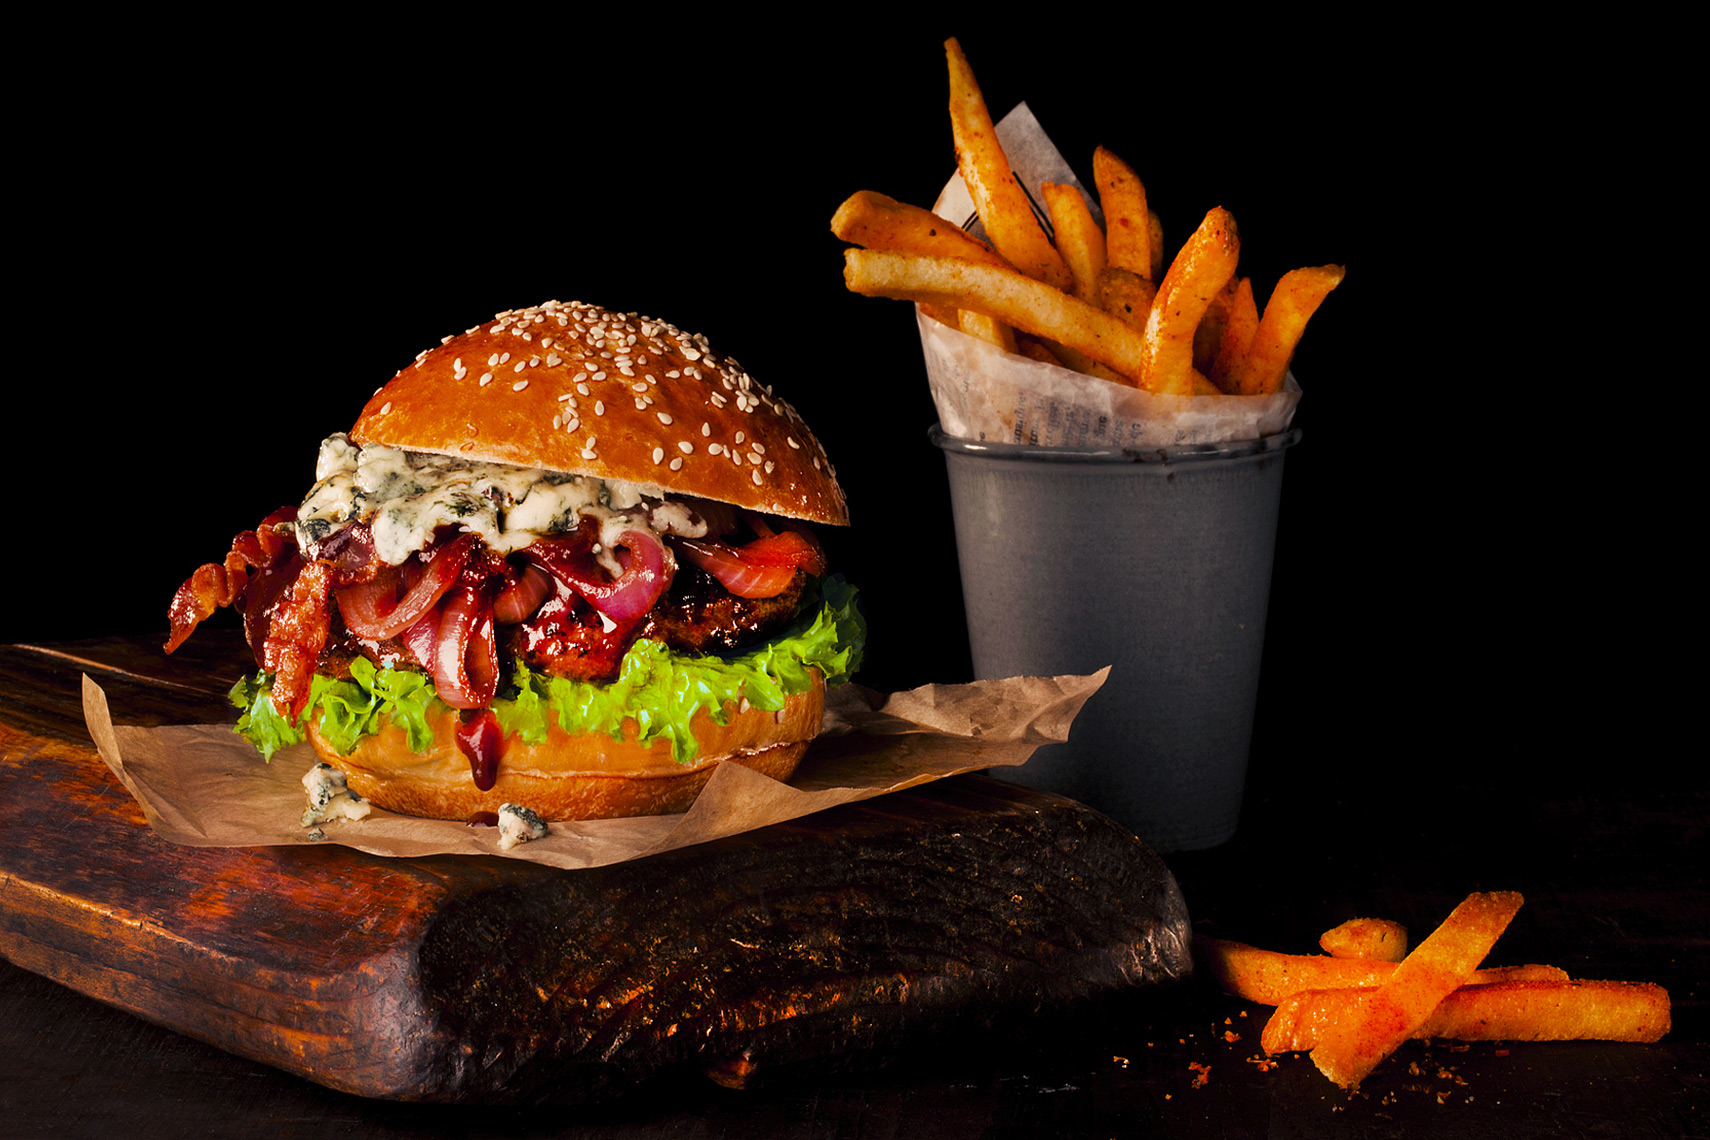 Hamburger and Fries, Rose Hodges Food Photography